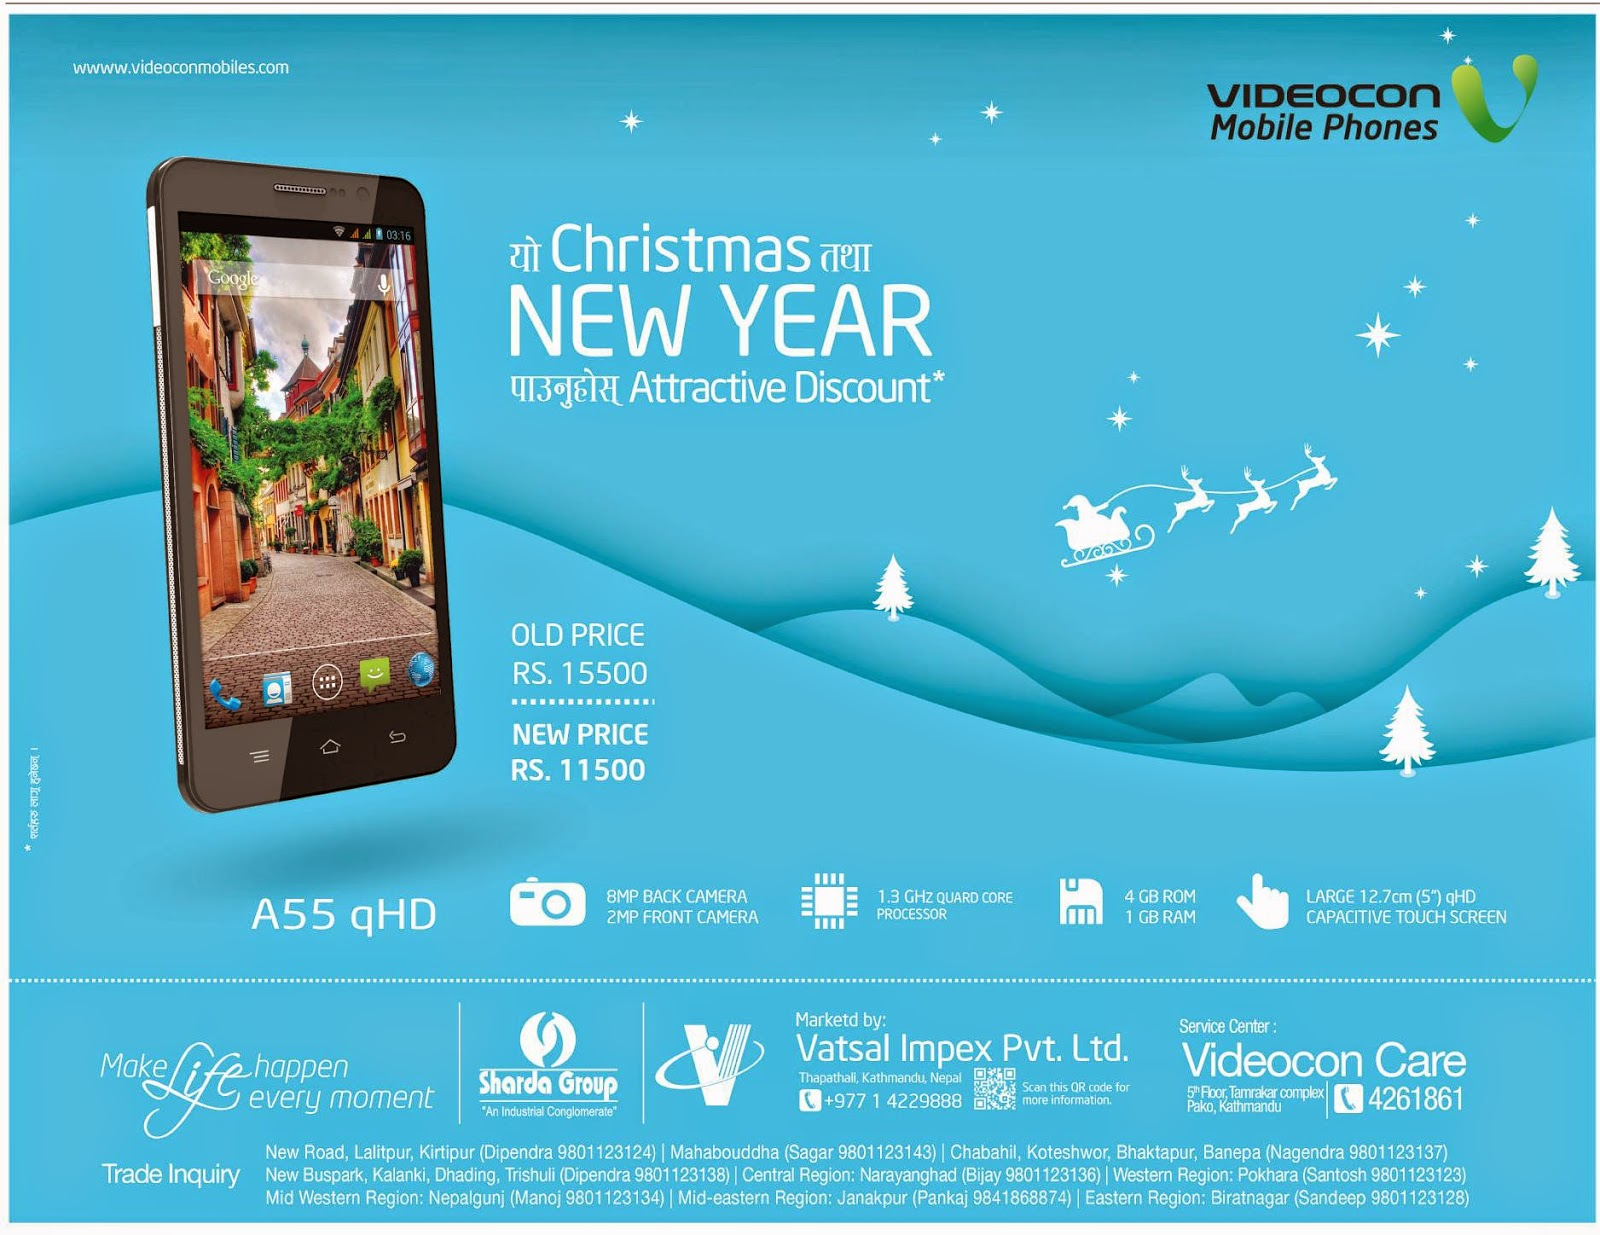 Videocon-A55qHD-Mobile-Price-Nepal